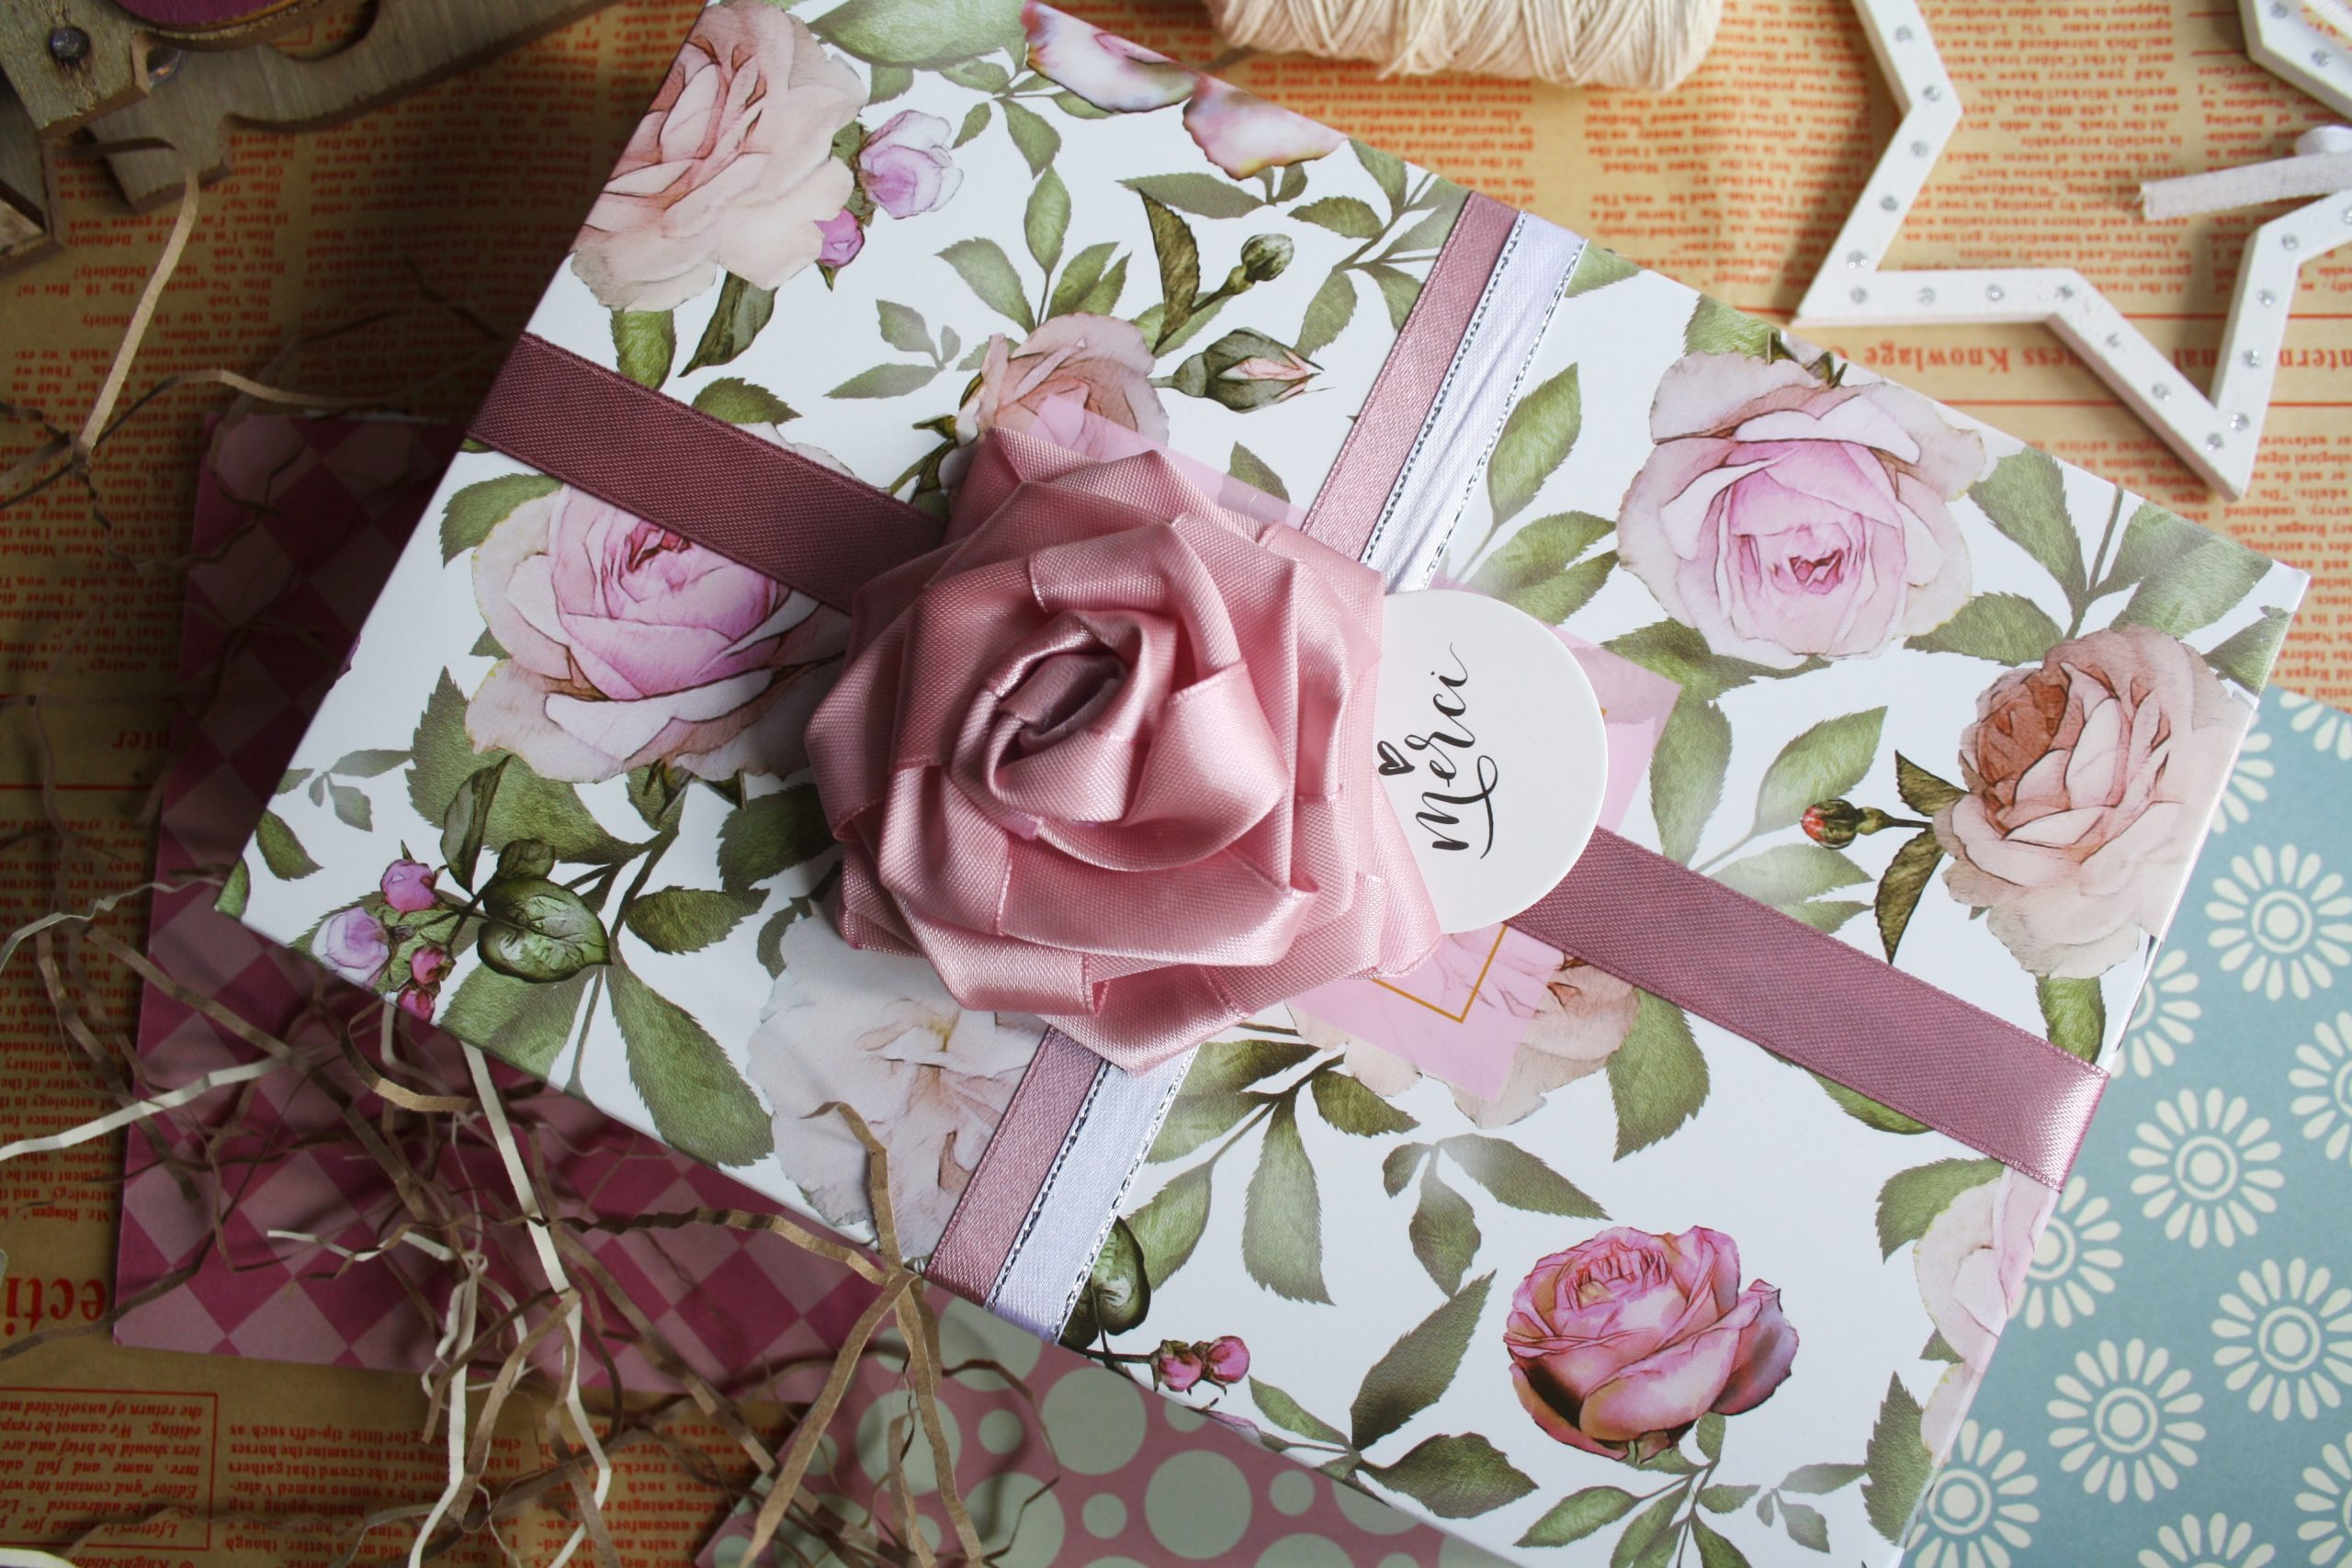 wrapped gift with pink rose bowl and wrapping papers